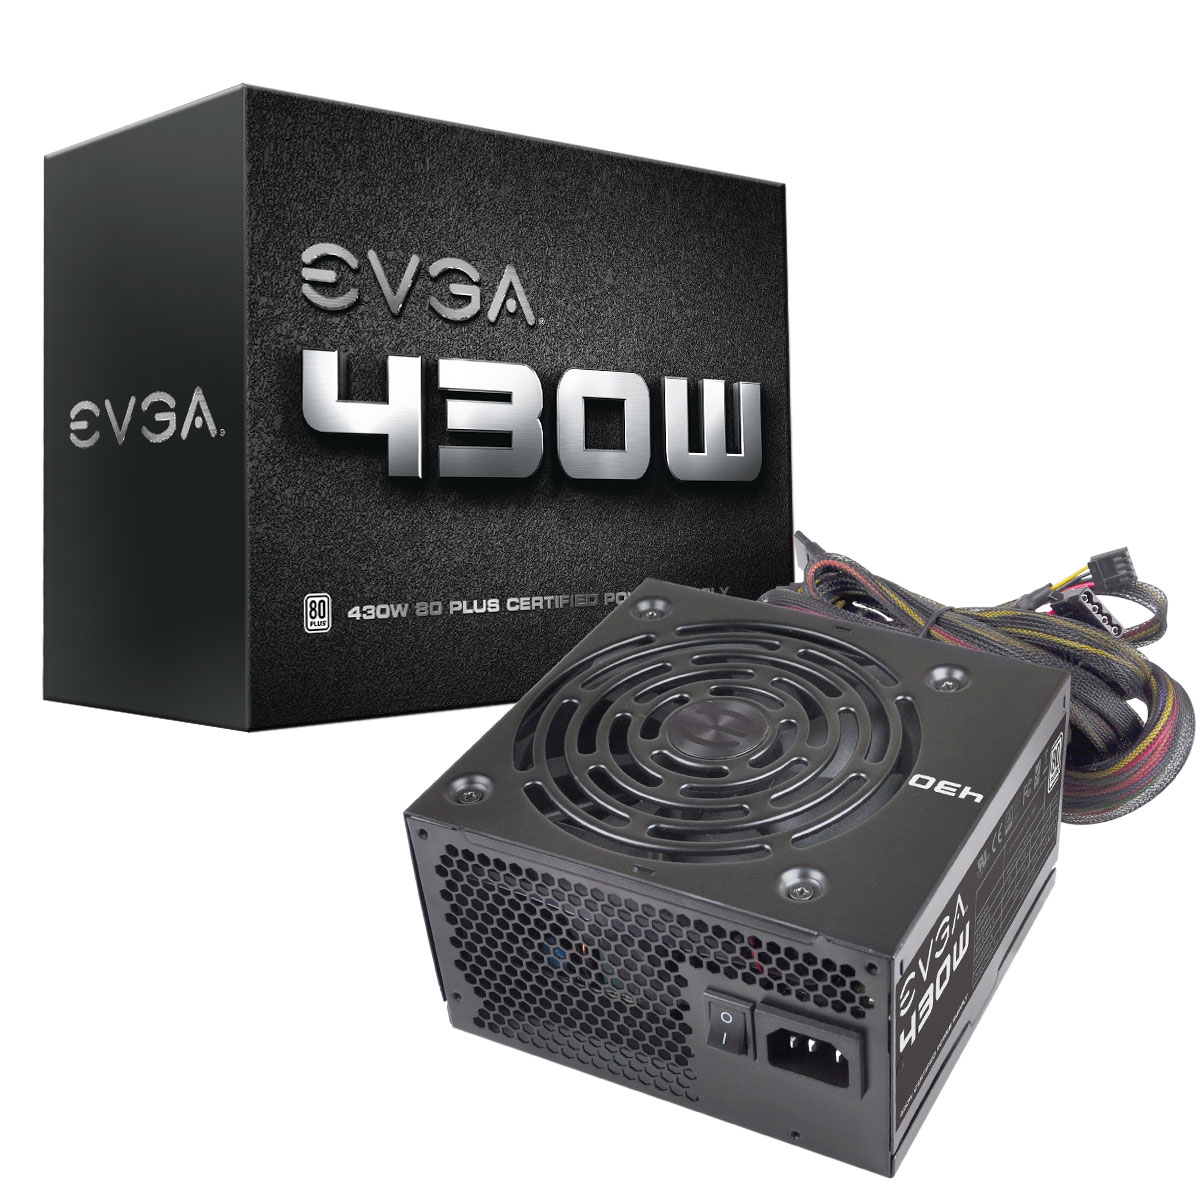 eVGA 430W 80+ ATX Power Supply